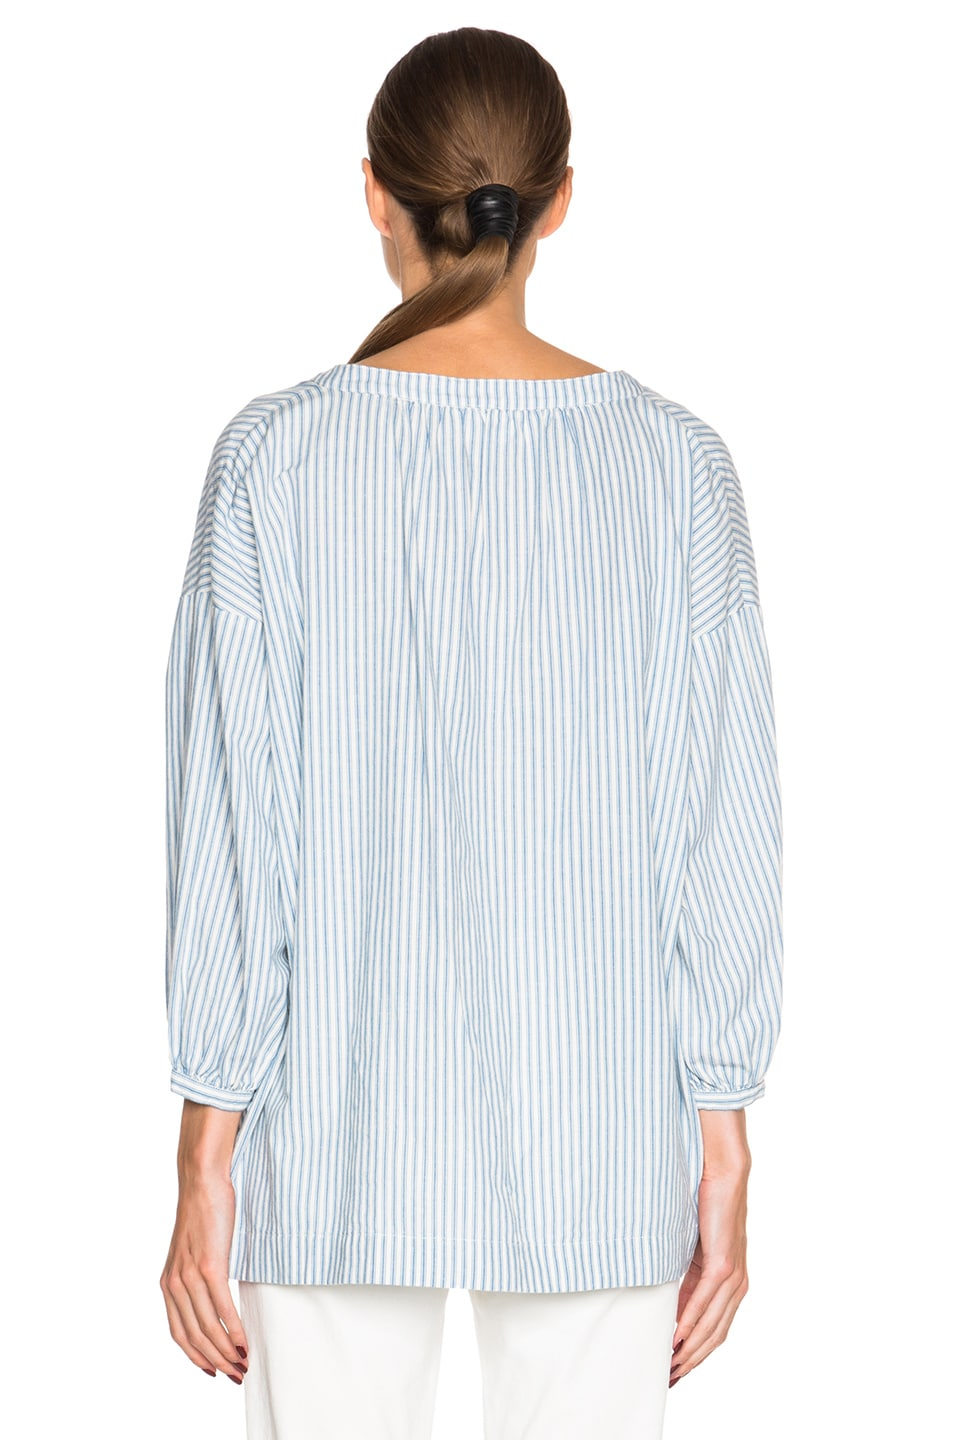 Image 4 of The Great Easy Tunic Top in Blue Mattress Stripe